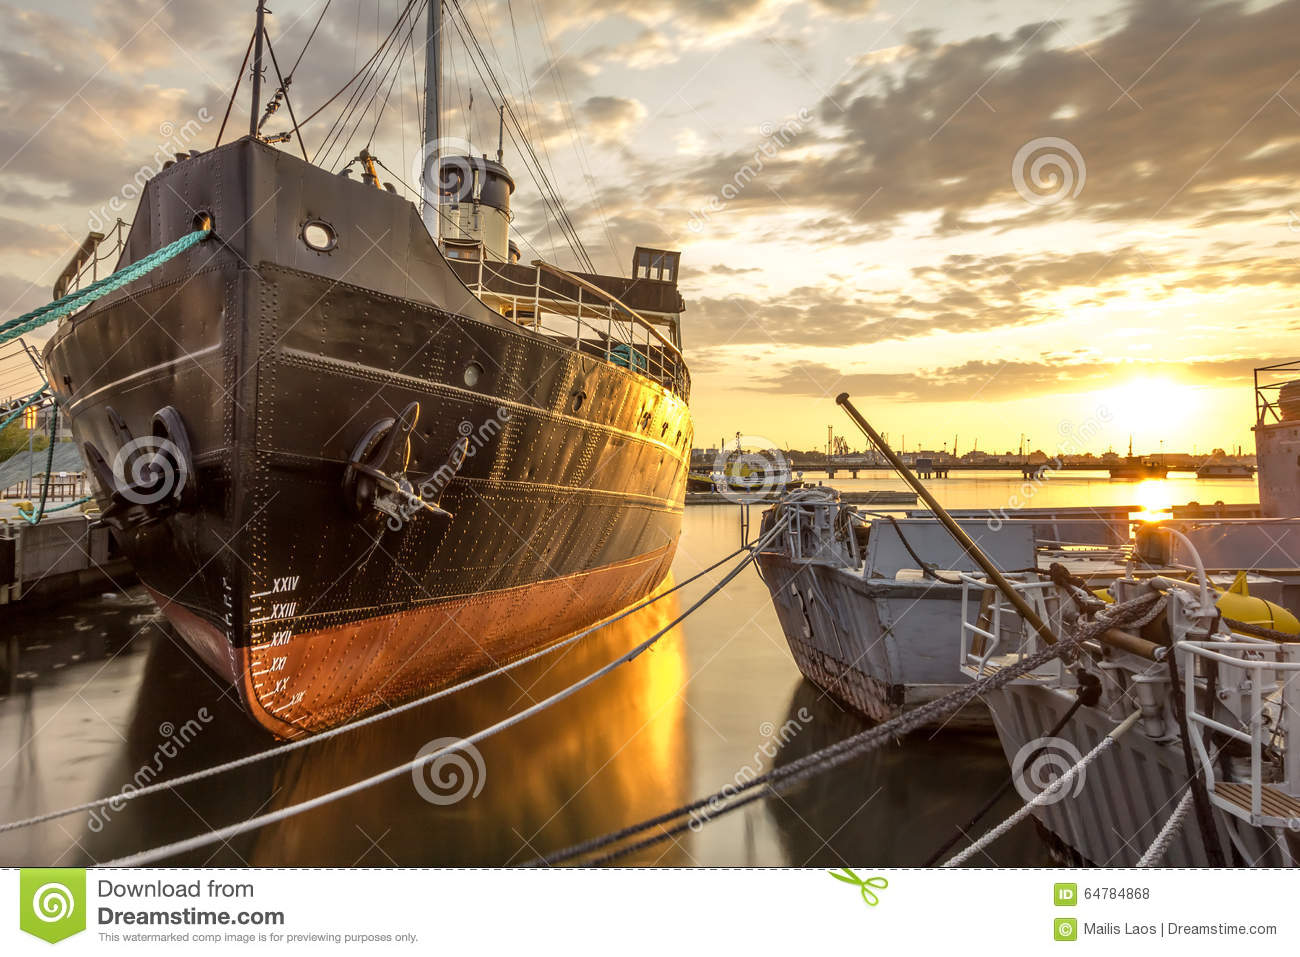 Download Sunset in the Harbor stock photo. Image of sunset, boats - 64784868